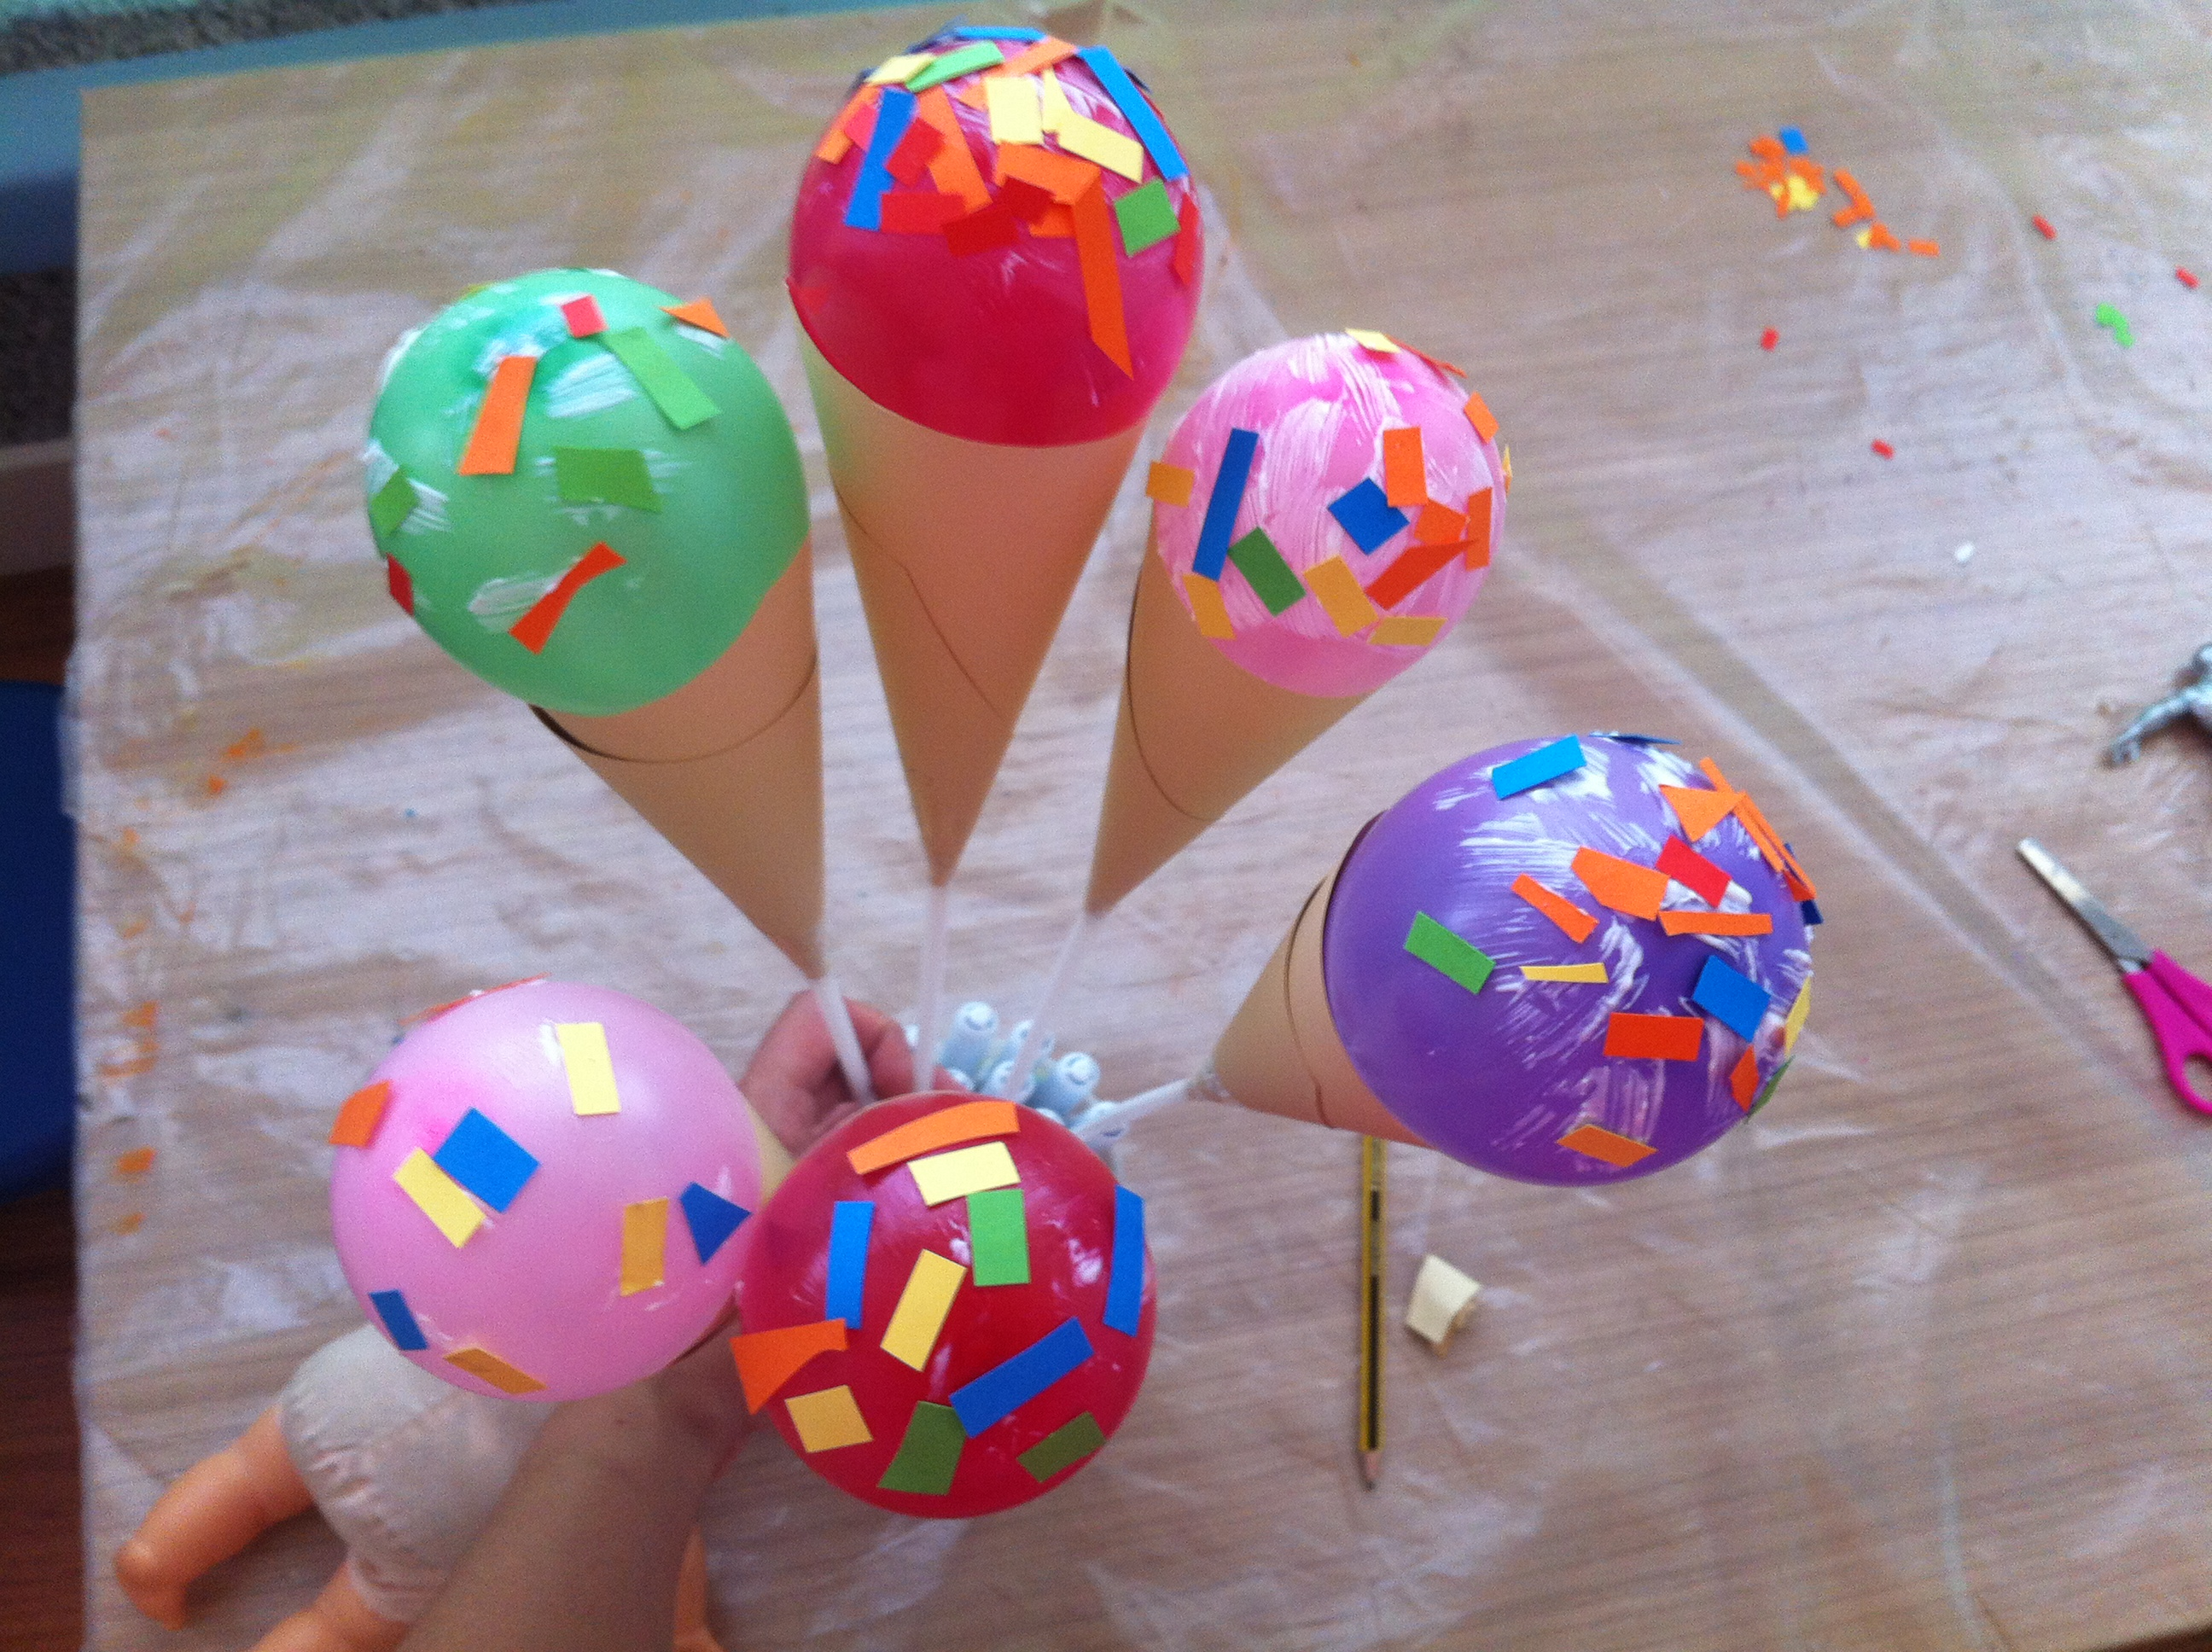 Helados en talleres de verano en inglés en Welcome to the World